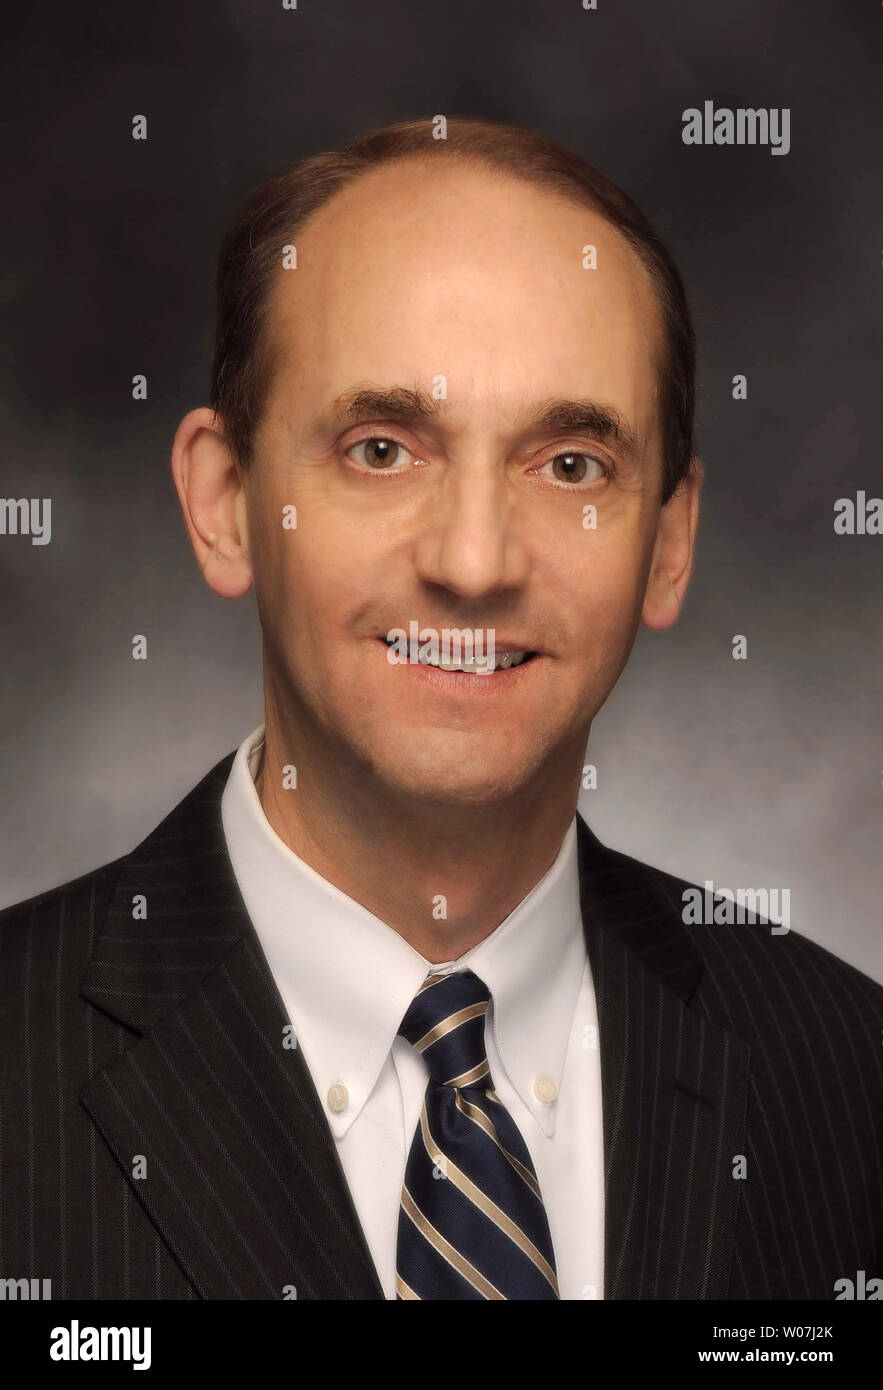 Missouri State Auditor Tom Schweich had died from an apparent self inflicted gunshot wound in Clayton, Missouri on February 26, 2015. Schweich, (54) who is a Republican, announced in January that he was seeking the Republican nomination for Governor in 2016. Photo provided by Missouri State Auditors office/UPI - Stock Image